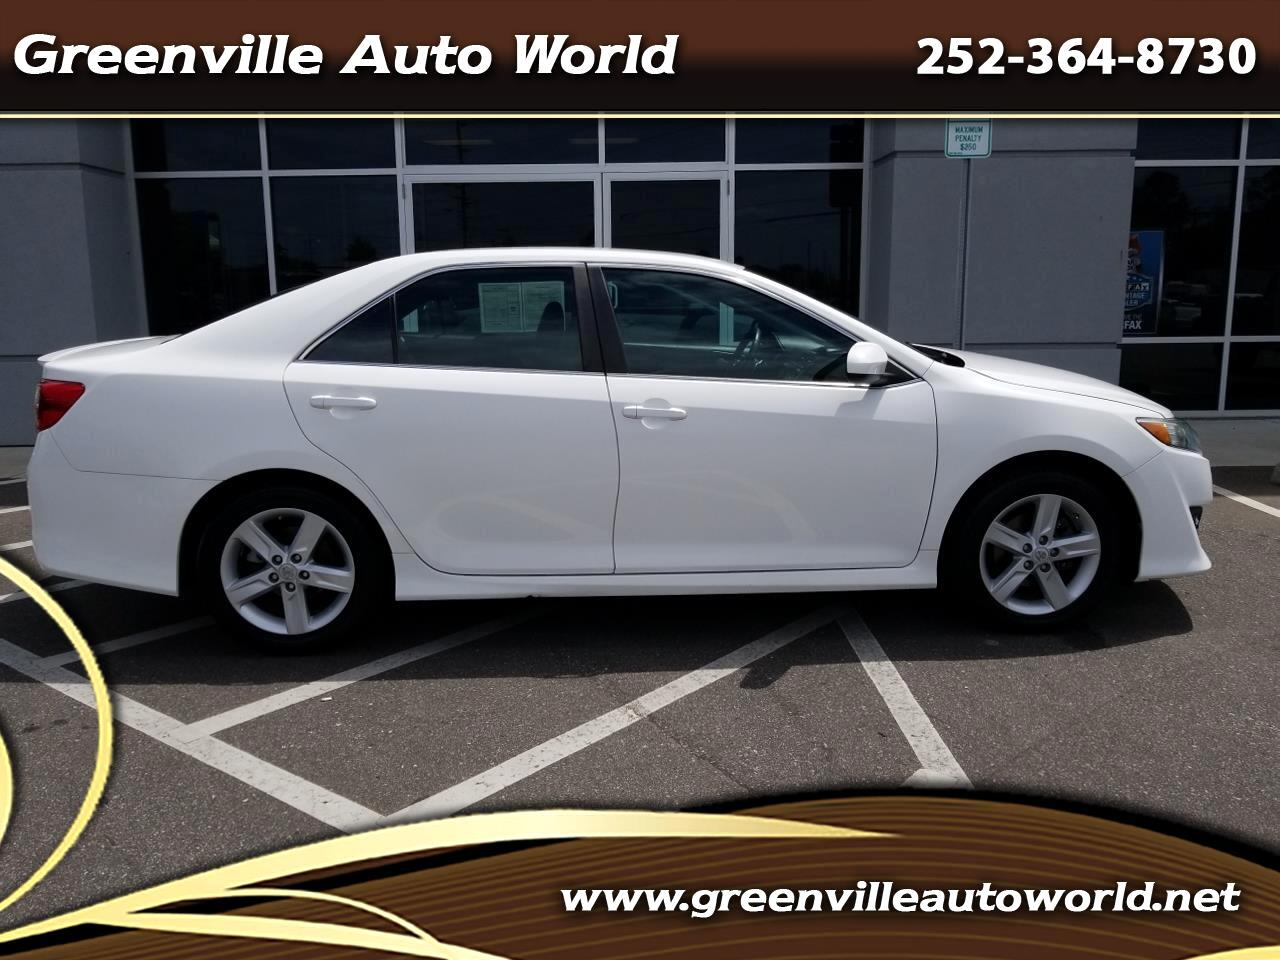 2012 Toyota Camry 2014.5 4dr Sdn I4 Auto SE Sport (Natl)